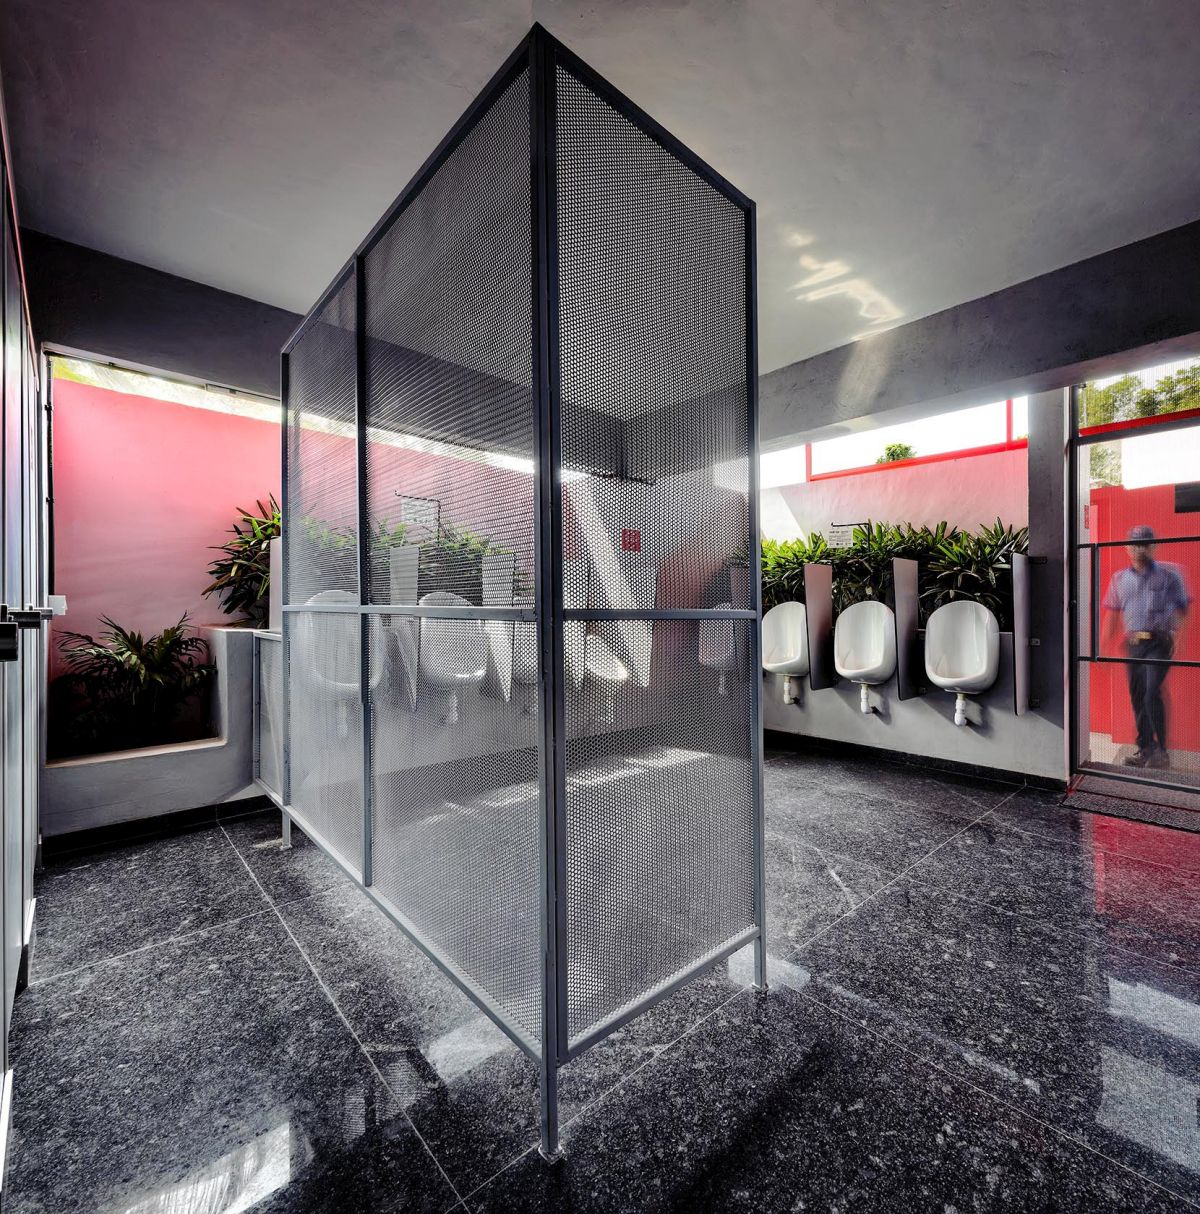 Pause - Restrooms, at Bombay-Goa Highway, by RC Architects 19